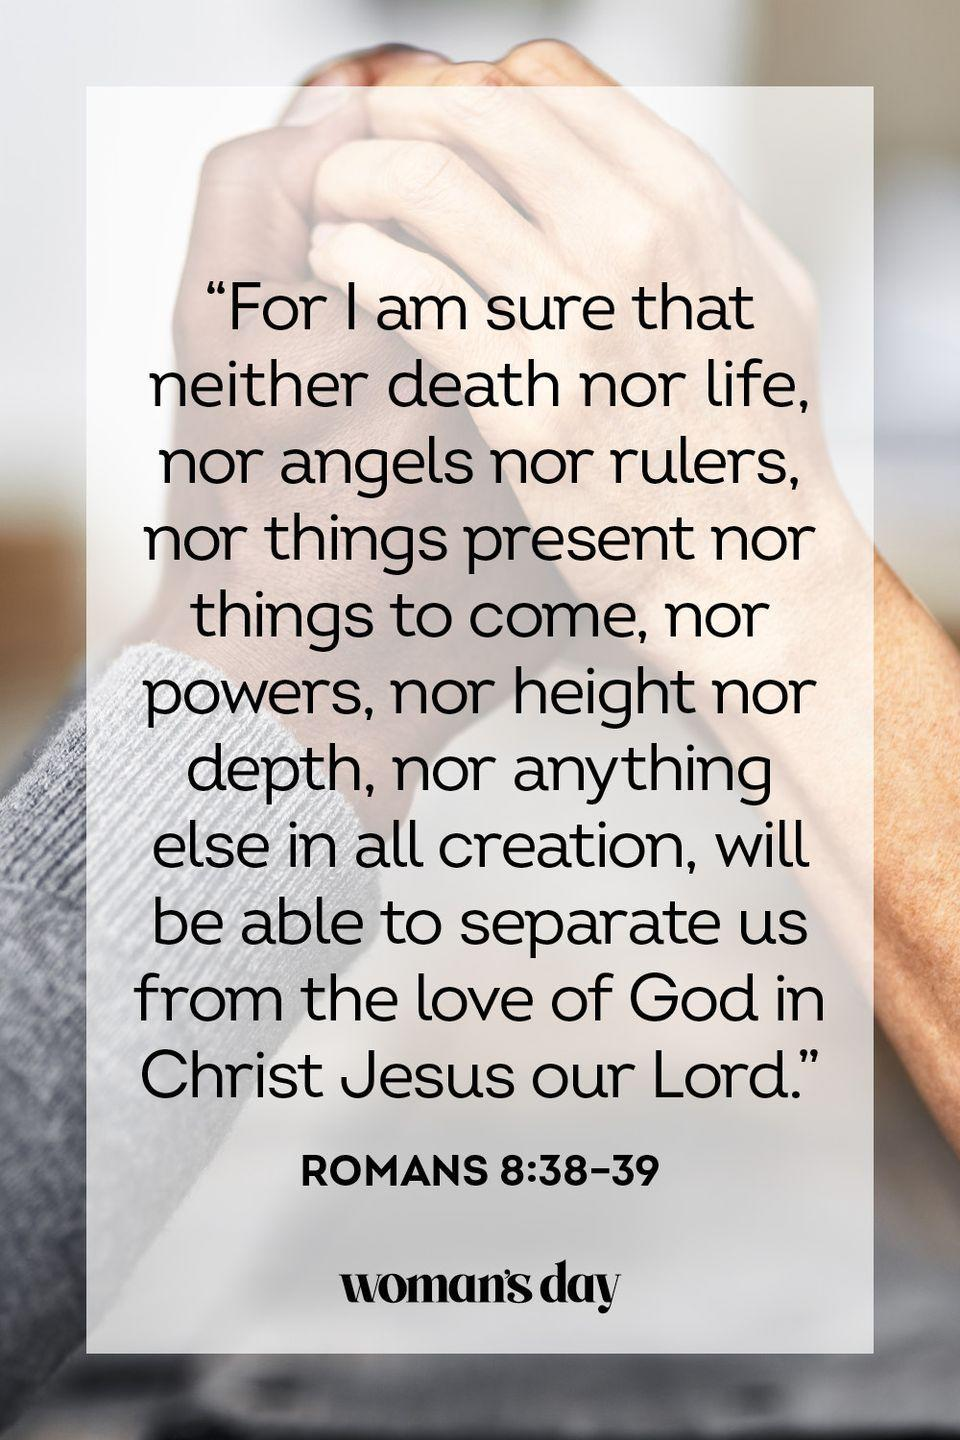 "<p>""For I am sure that neither death nor life, nor angels nor rulers, nor things present nor things to come, nor powers, nor height nor depth, nor anything else in all creation, will be able to separate us from the love of God in Christ Jesus our Lord.""</p><p><strong>The Good News:</strong> There is nothing on the face of the earth, not even death itself, that is powerful enough to separate us from the love of God.</p>"